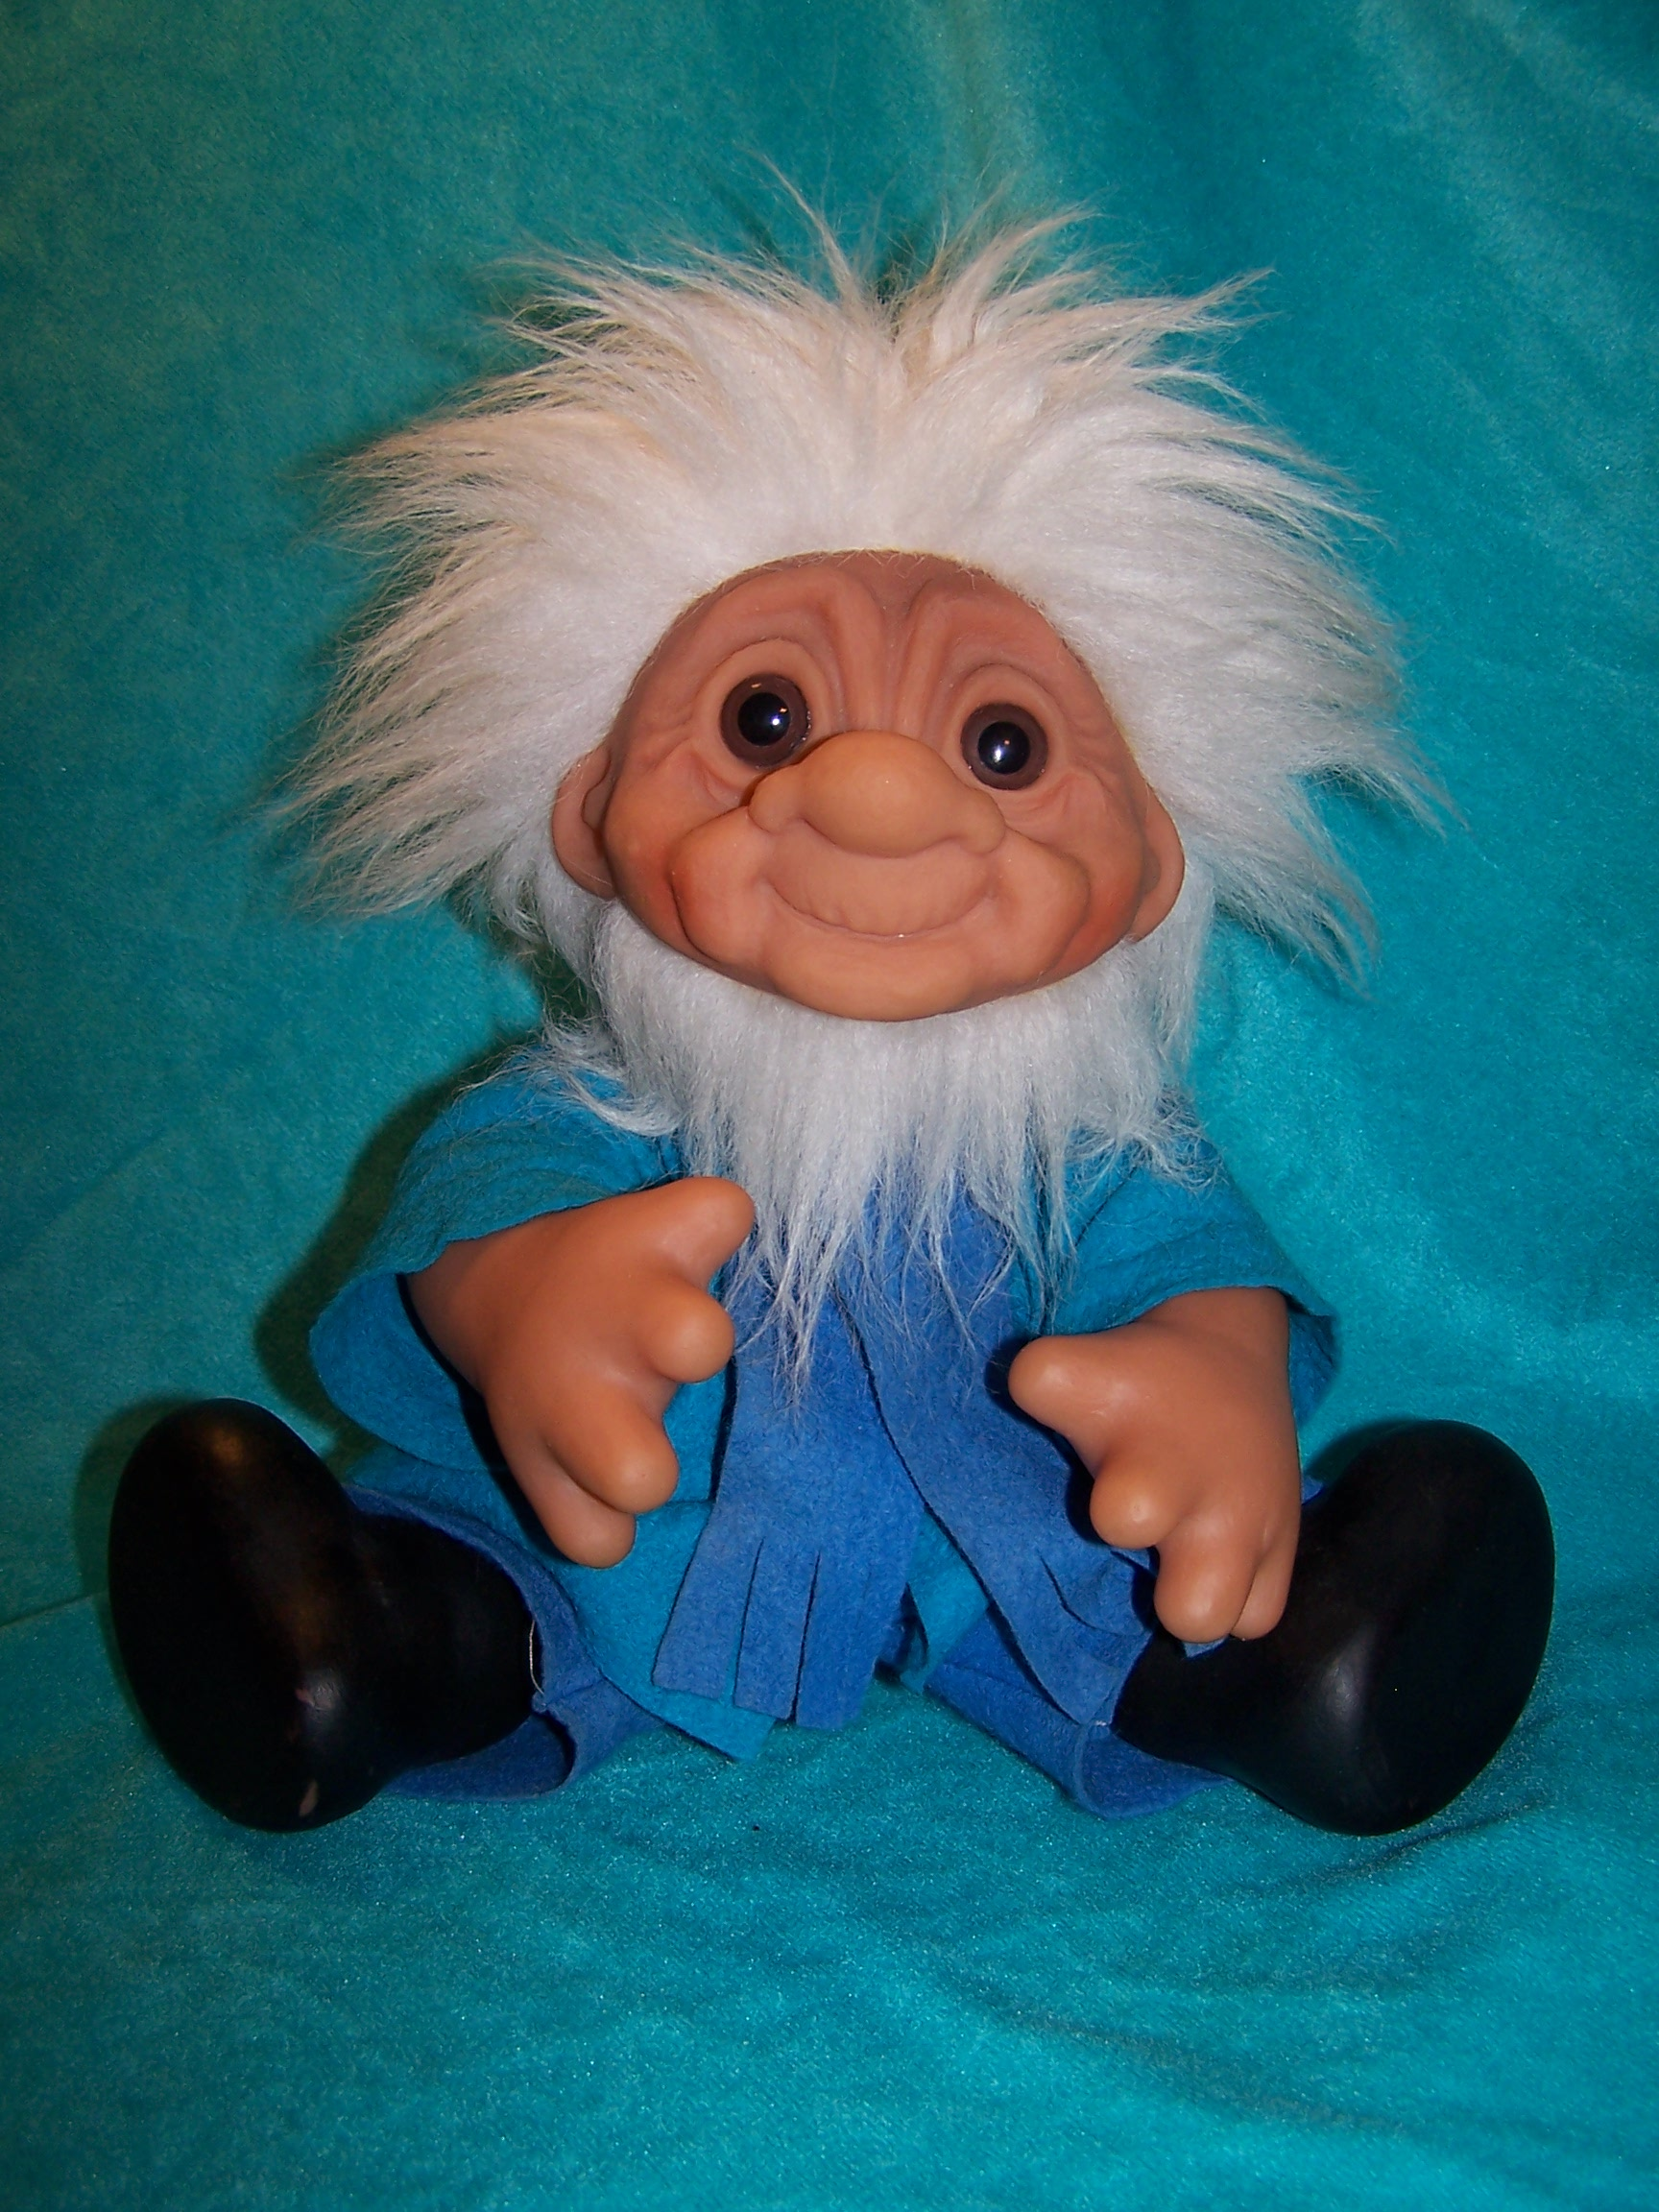 Image 7 of Norfin Troll Doll Grandpa, Thomas Dam, 1977 Denmark